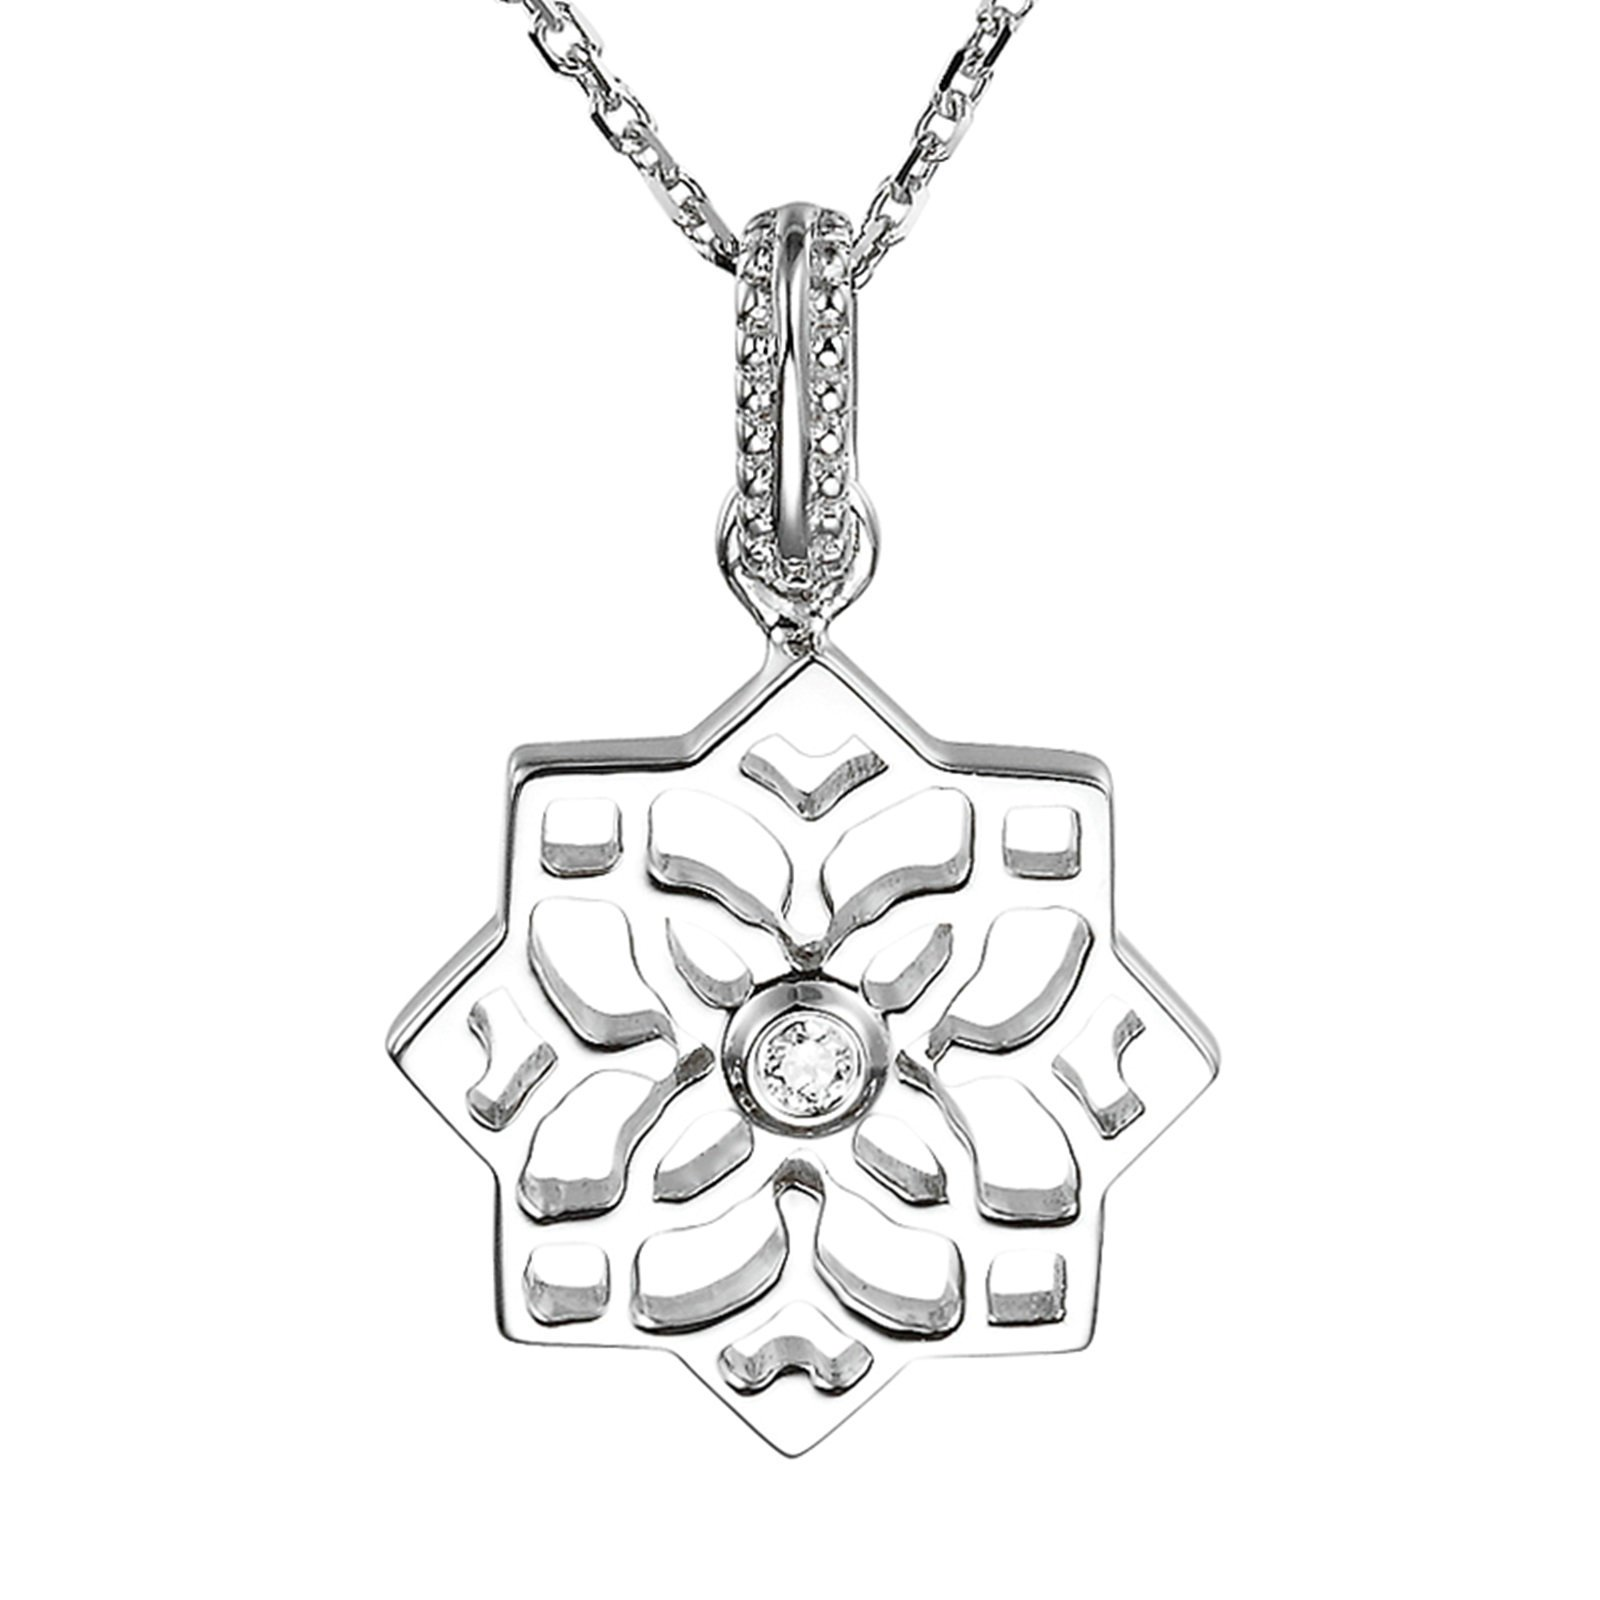 Gnzoe Jewelry 18K White Gold Lotus Flower 0.01ct Pendant Necklace Bride Fashion Chain